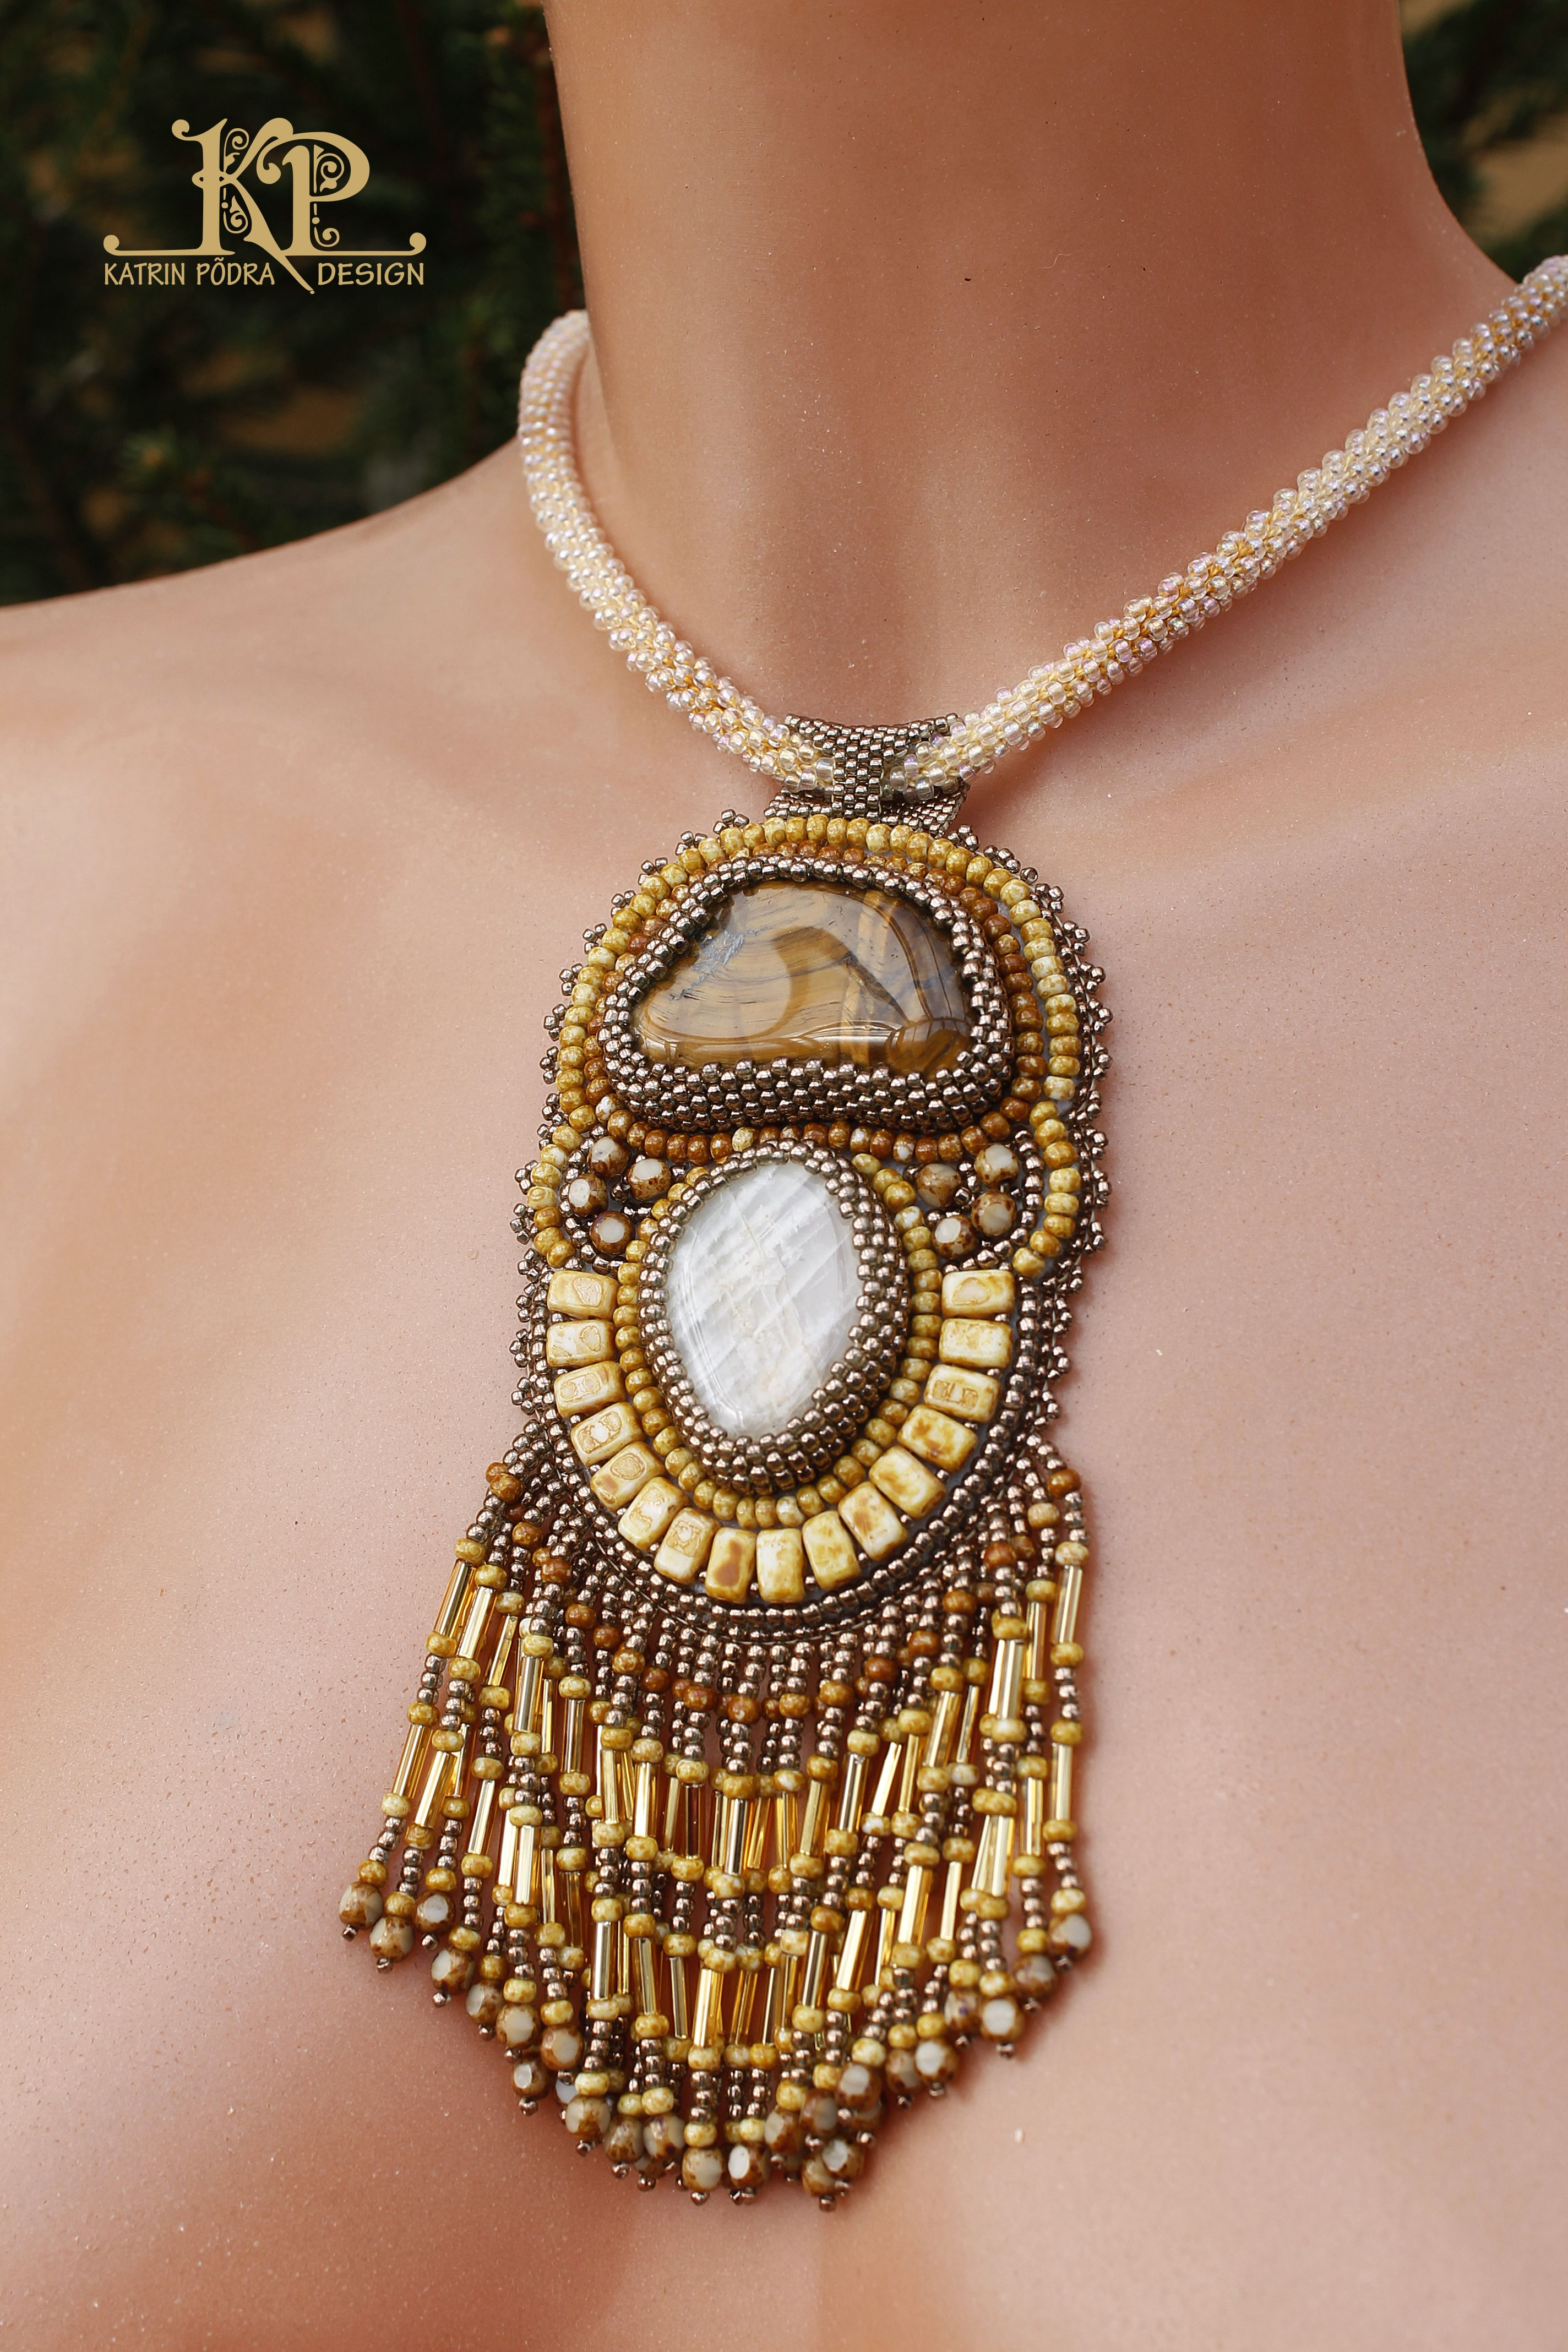 Bed embroidery necklace with moonstone and tiger's eye natural stone. Made by Katin Põdra.